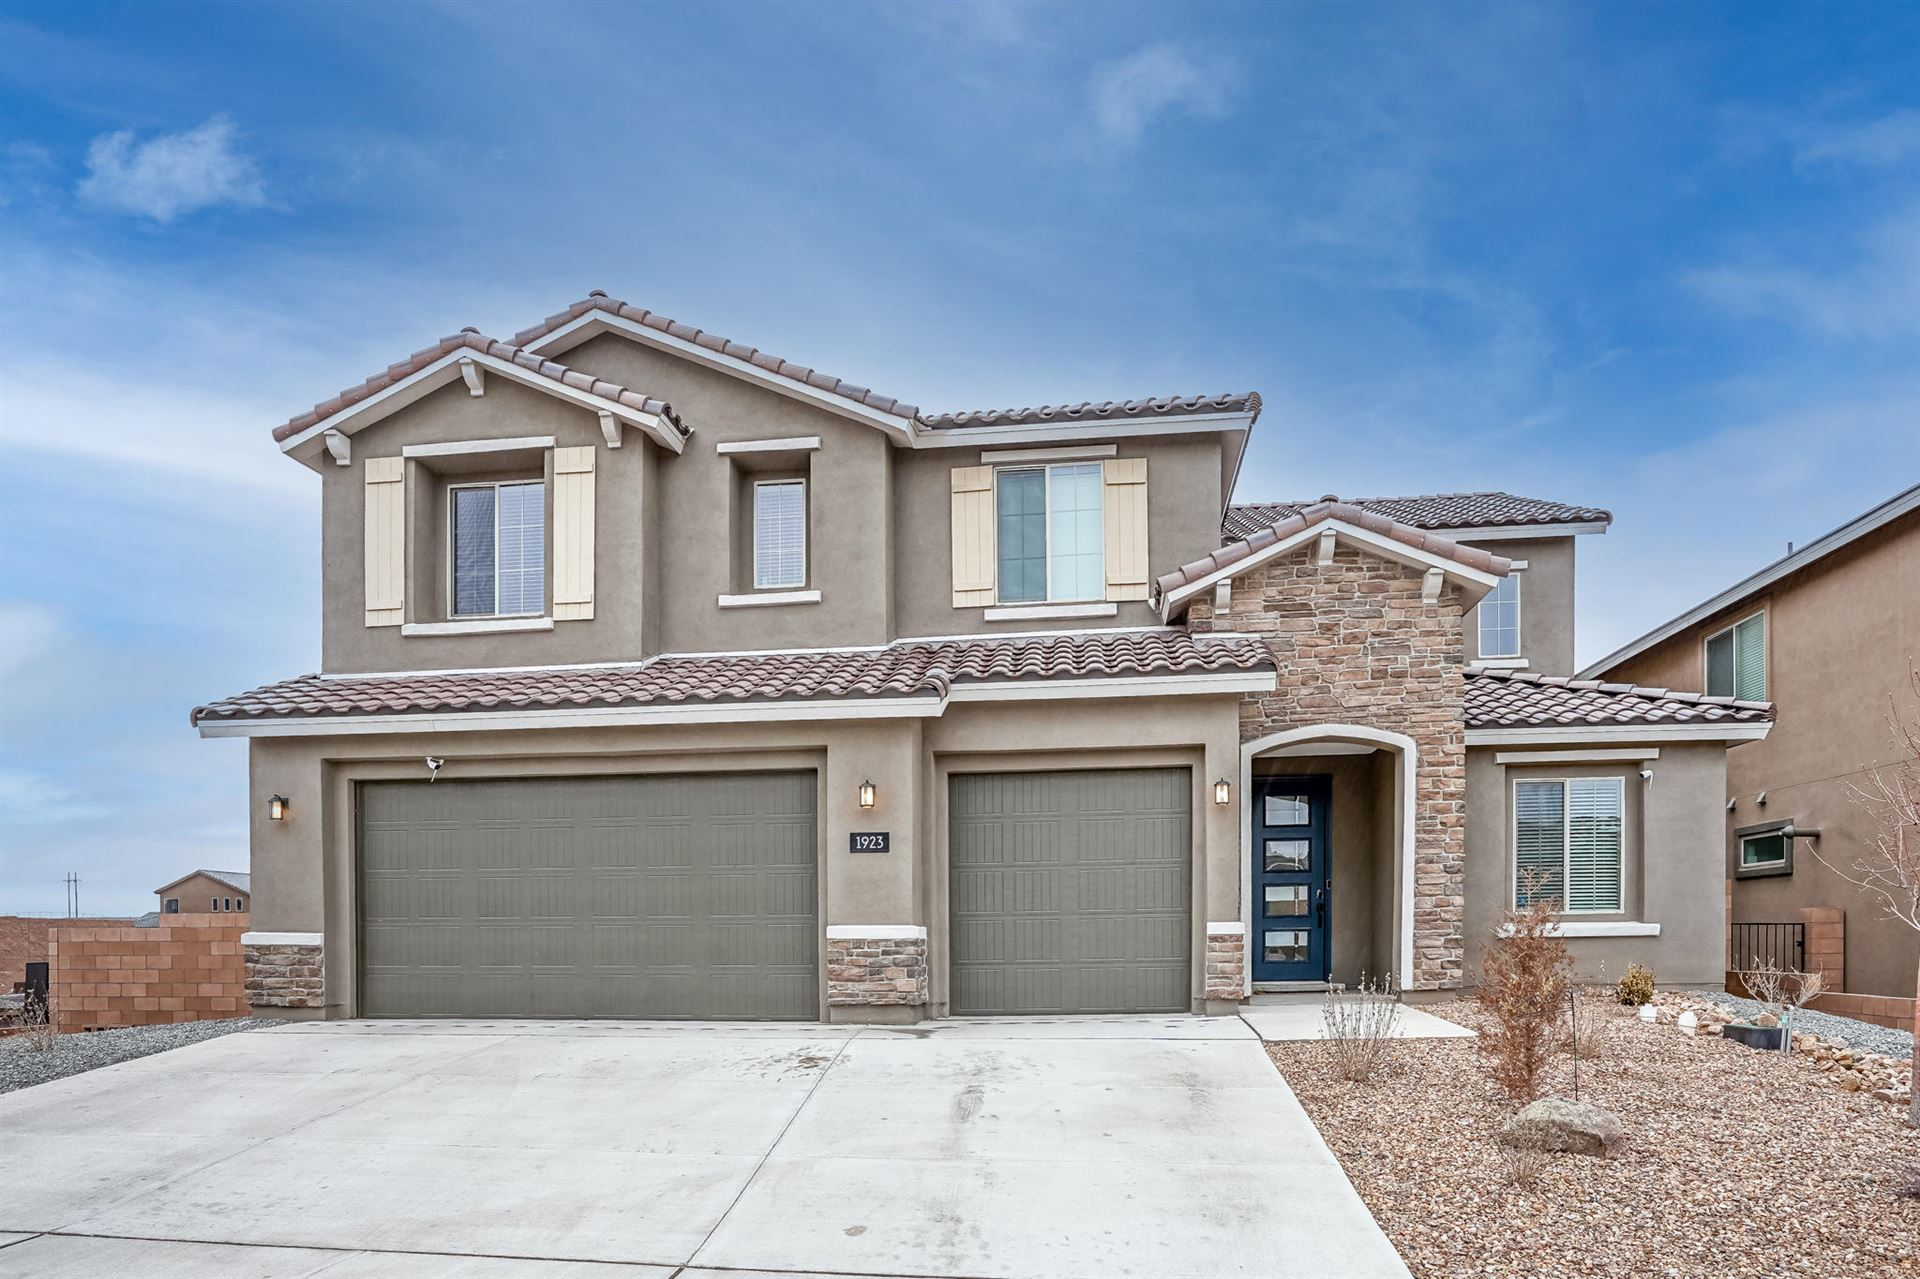 1923 DUKE CITY Street SE, Albuquerque, NM 87123 - MLS#: 984379